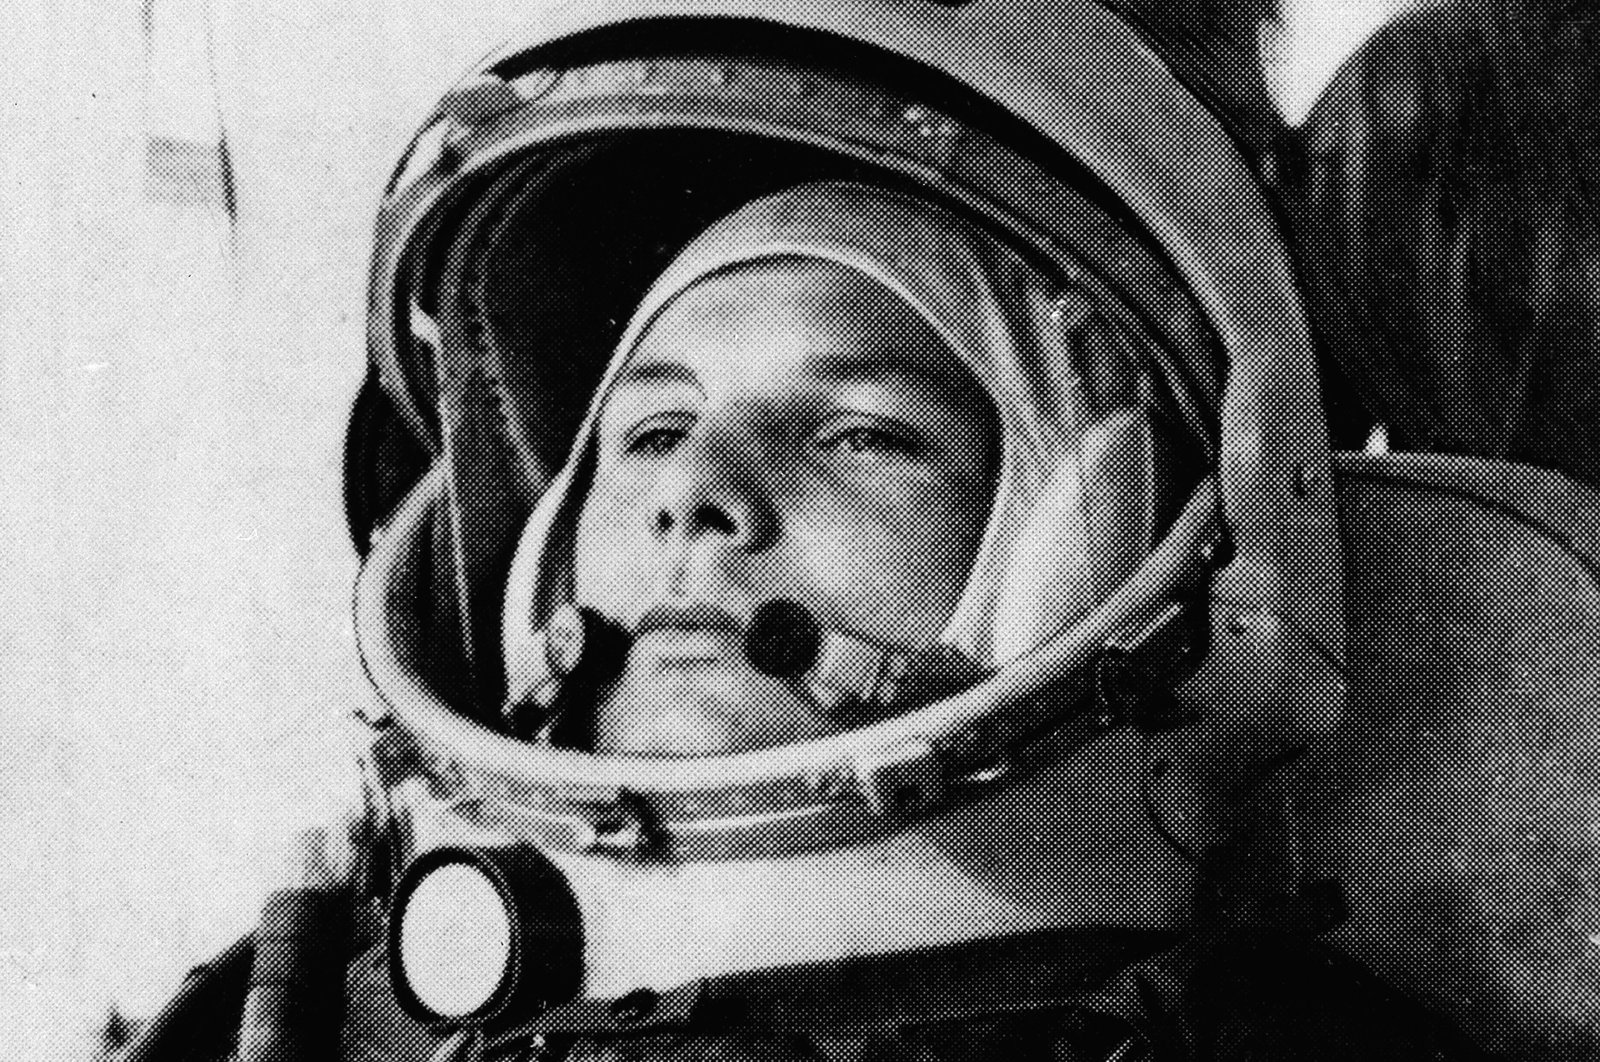 In this undated file photo, Soviet cosmonaut Maj. Yuri Gagarin, the first man to orbit the earth, is shown in his space suit. (AP Photo)